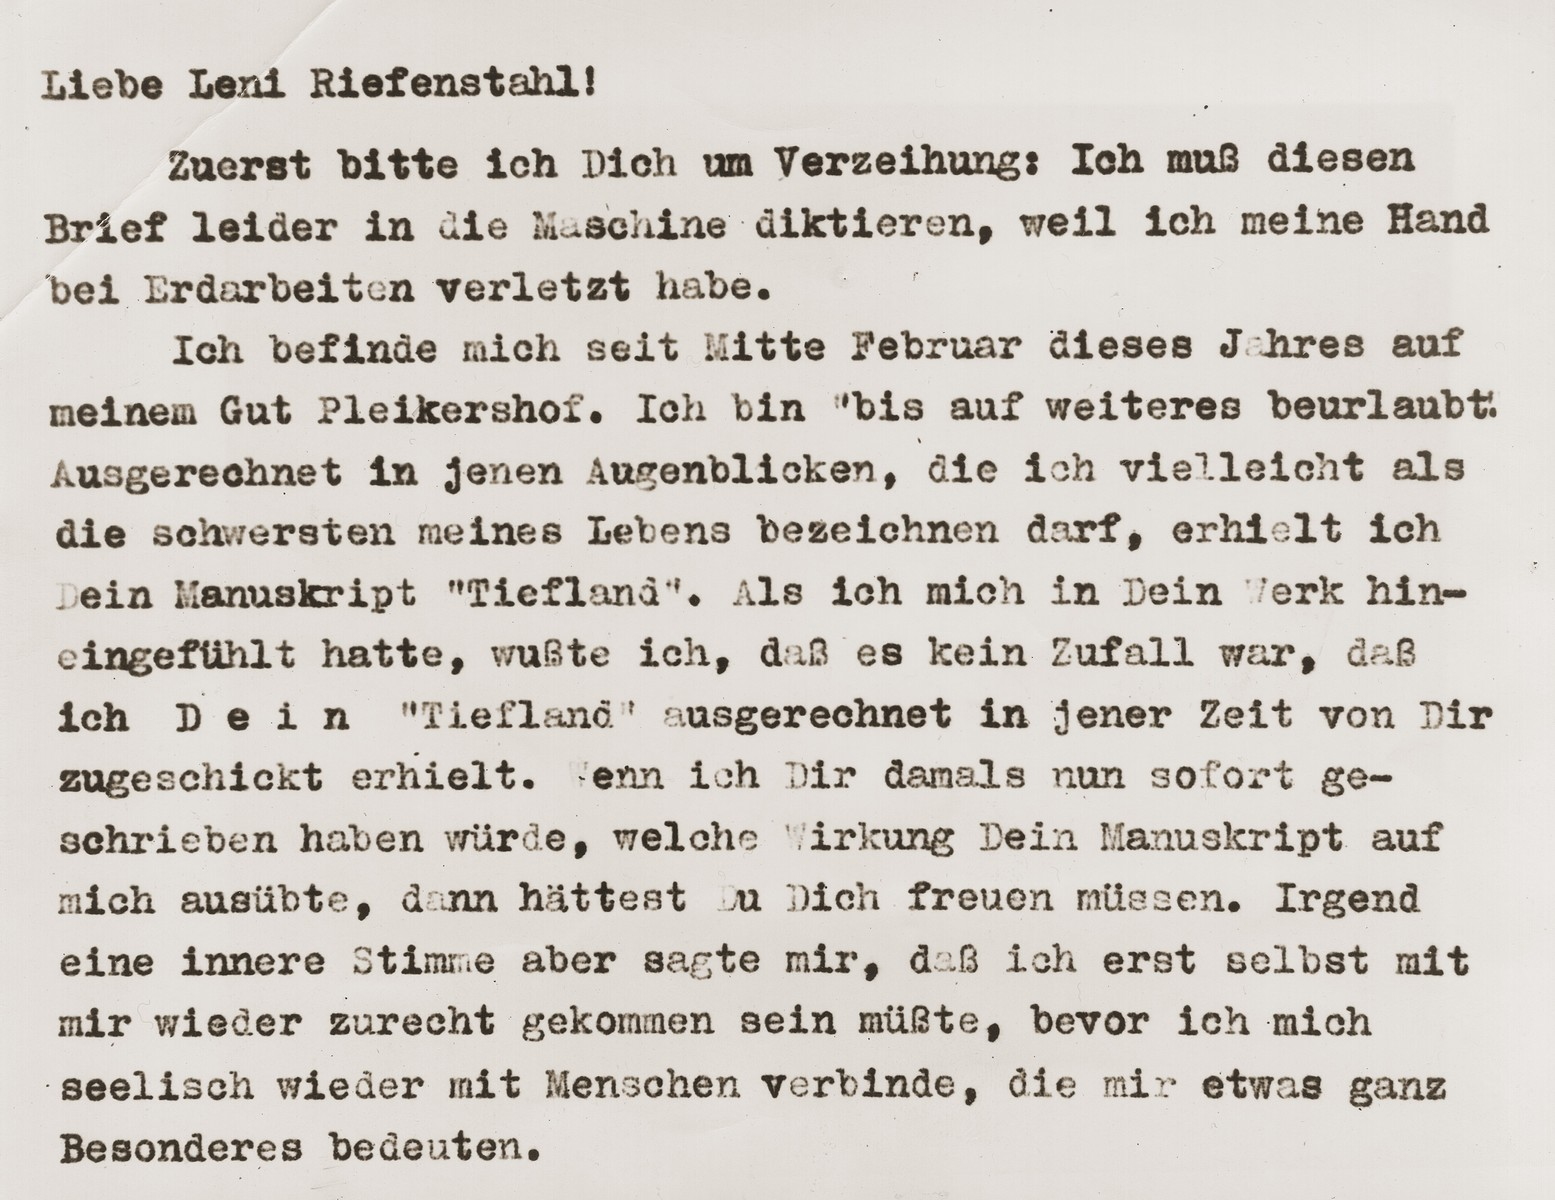 """Excerpt from a letter written by Julius Streicher to documentary film maker, Leni Riefenstahl.    The excerpt reads: """"Dear Leni Riefenstahl!  First, I must ask you to forgive me--unfortunately, I must dictate this letter into the machine, for I injured my hand doing excavation work.  Since mid-February this year, I 've been at my estate, Pleikershof.  I have been placed """"on leave until further notice.""""  At exactly this moment, that I might describe as the most difficult of my life, I received your manuscript, """"Tiefland"""" (Lowland).  As I felt myself drawn into your work, I knew that it was no coincidence that I received """"Tiefland"""" from you at precisely this time.  If I had written to you then, of the effect your work had on me, you would have been pleased.  However, some kind of inner voice told me that I must first come to terms with myself again, before I bind myself once more to people who mean something very special to me.""""         Images of Streicher's correspondence were made available by the International News Service in October, 1945, and were used to illustrate a series of articles about Julius Streicher, a defendant at the International Military Tribunal war crimes trial in Nuremberg. The original INS caption reads:  """"This letter from Julius Streicher to Leni Riefenstahl, Nazi movie actress, marked the beginning of their secret romance.  Written in German, it is the copy found in Streicher's private files by Lieut. Causin.  In the portion shown here, Streicher begins by discussing Leni's literary efforts, and ends by inviting her to his estate."""""""